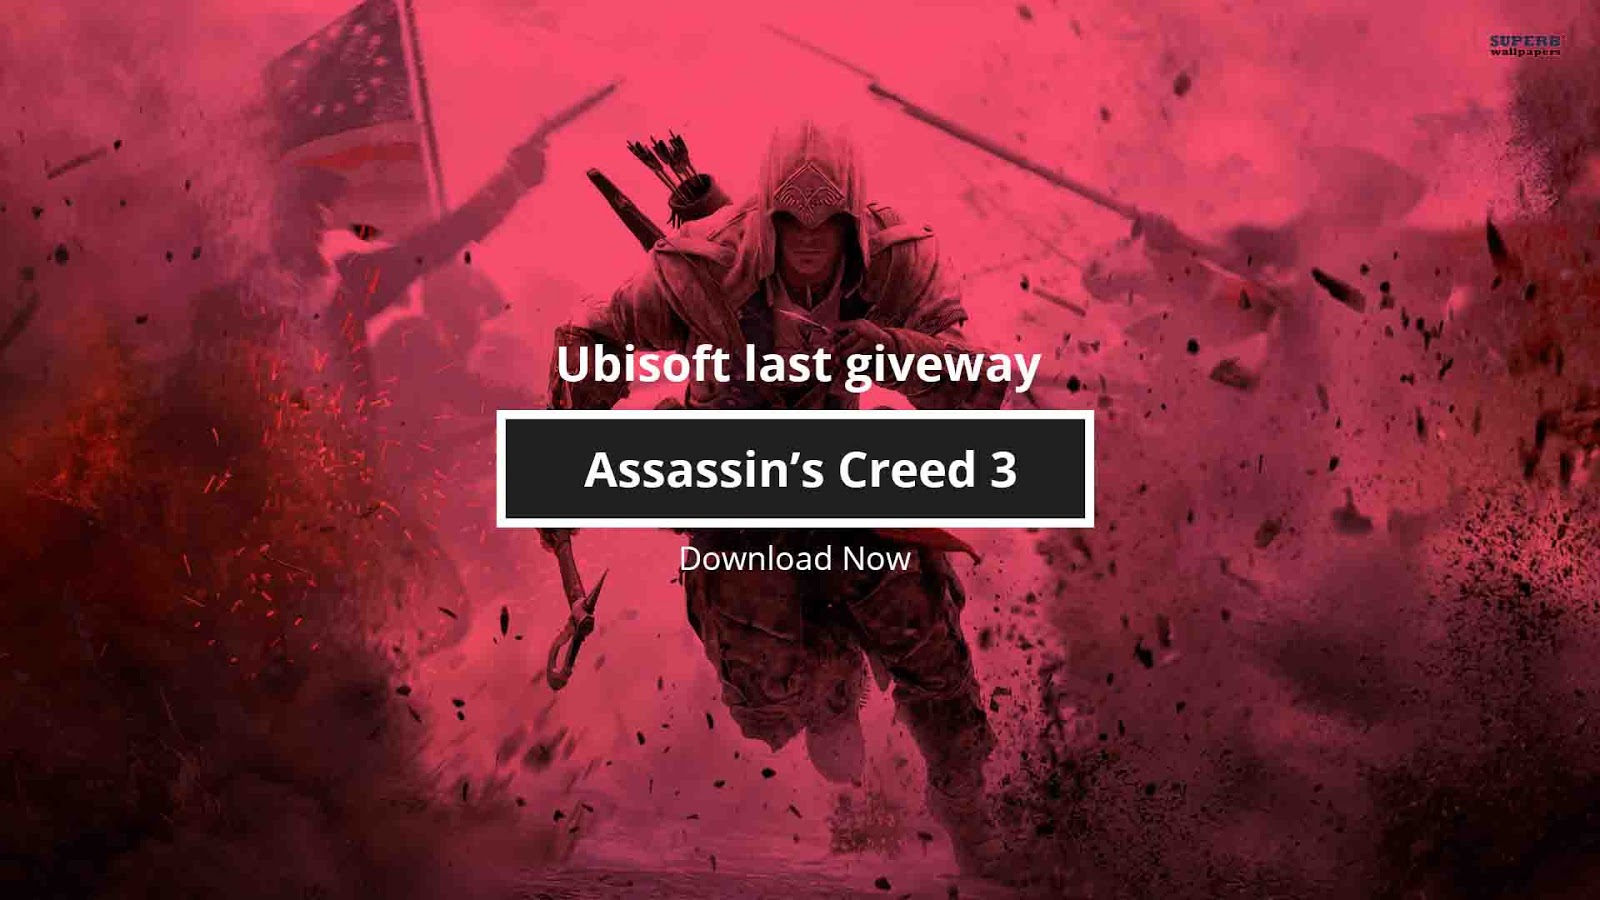 last-game-of-ubisoft--anniversary-giveaway-is-assassin-creed-3